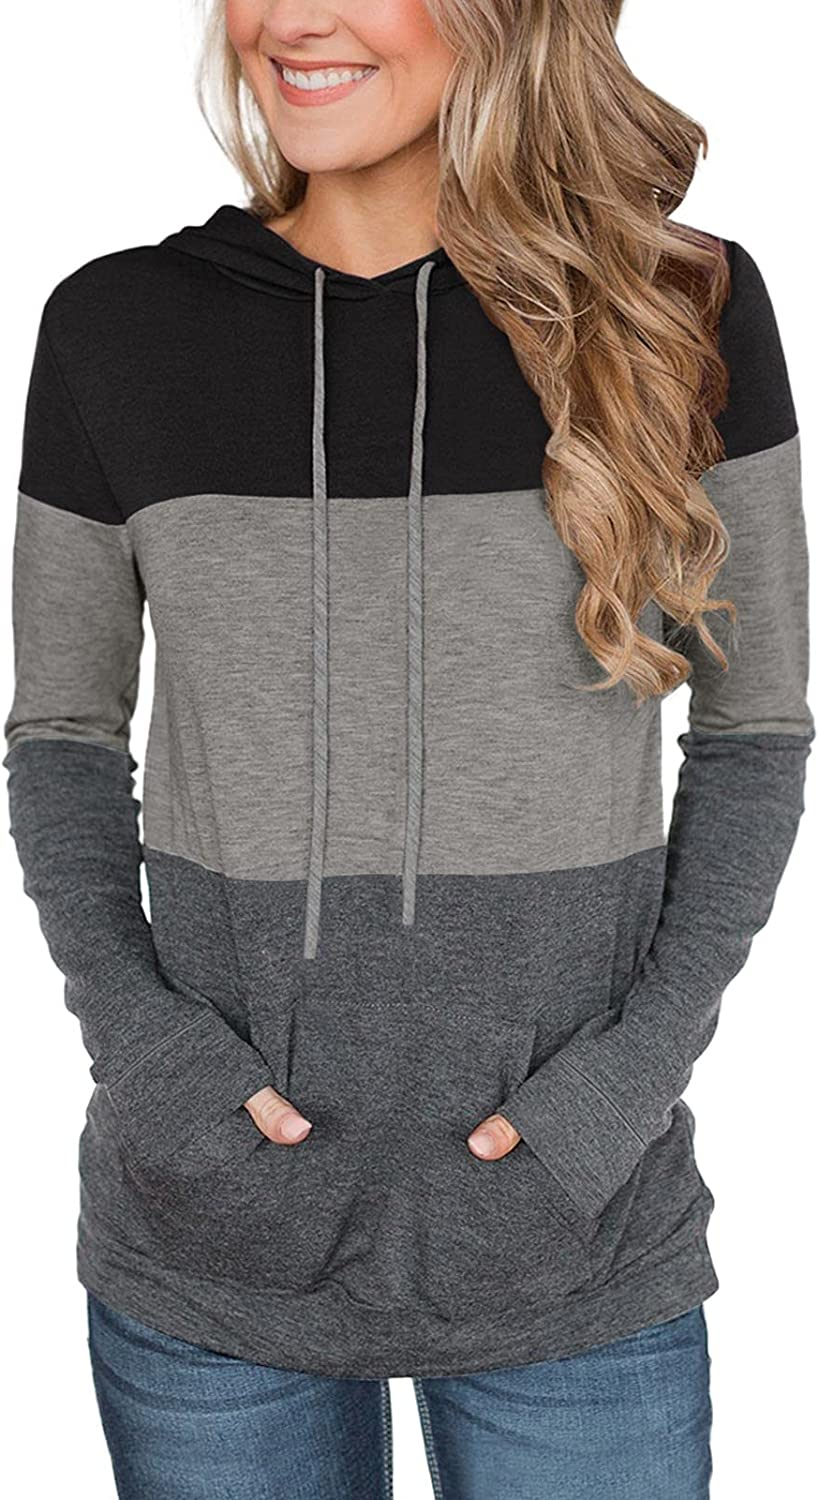 Berryou Color Block Casual Hoodies for Women Long Sleeve Drawstring Pullover Sweatshirts with Pocket Tunic Tops